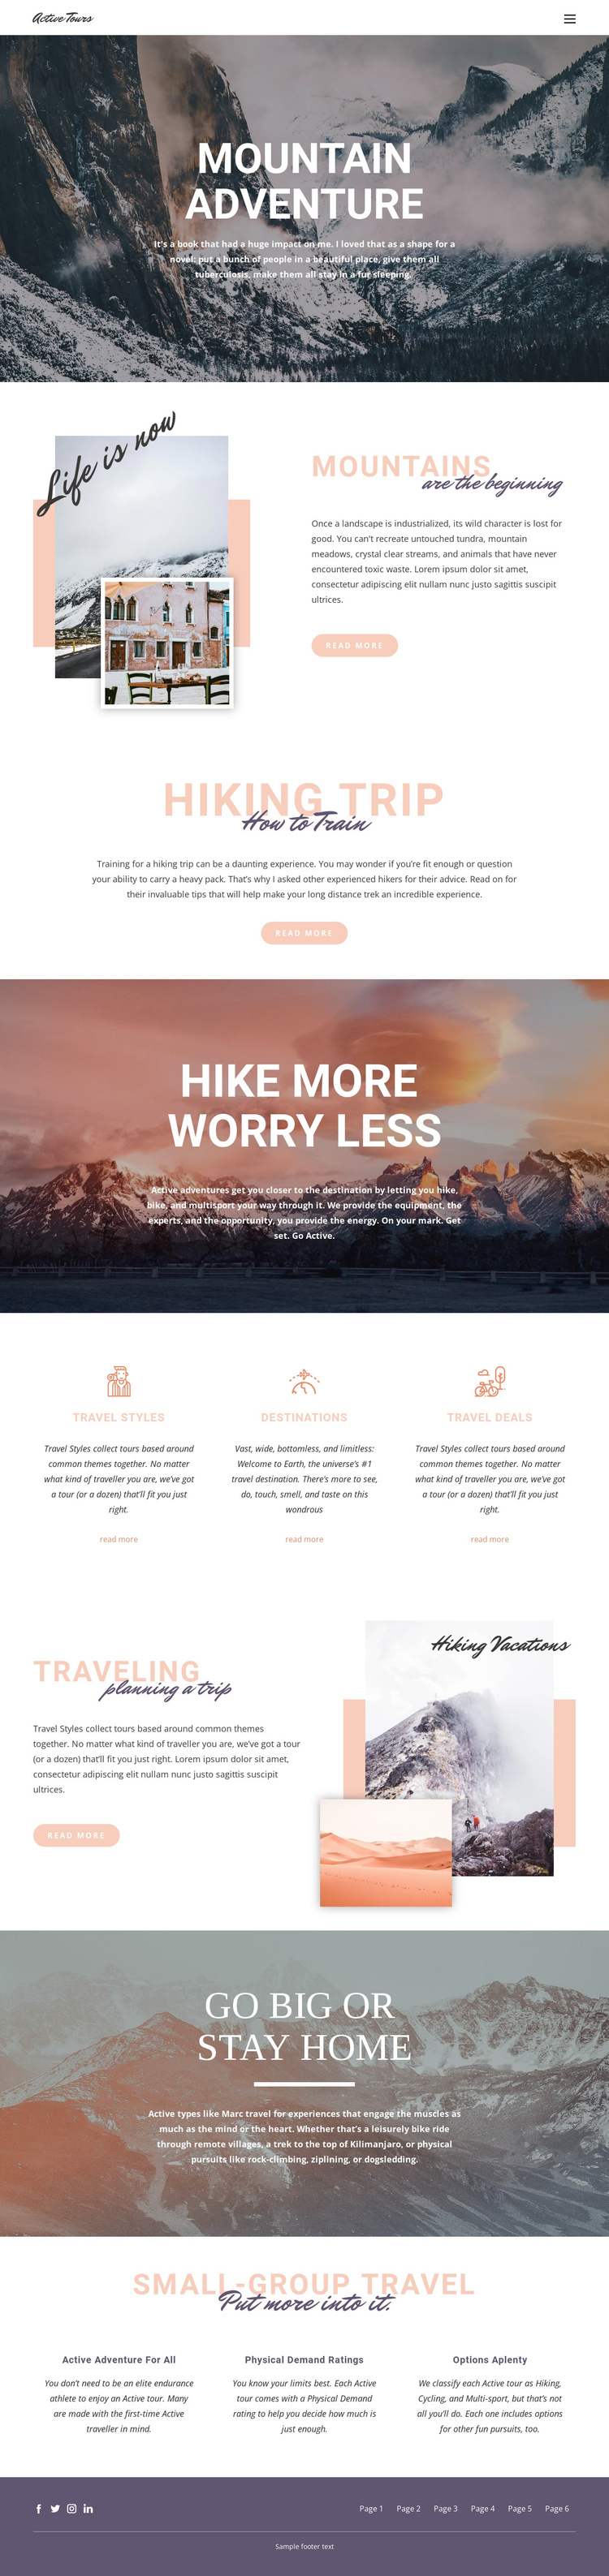 Guided backpacking trips Joomla Template